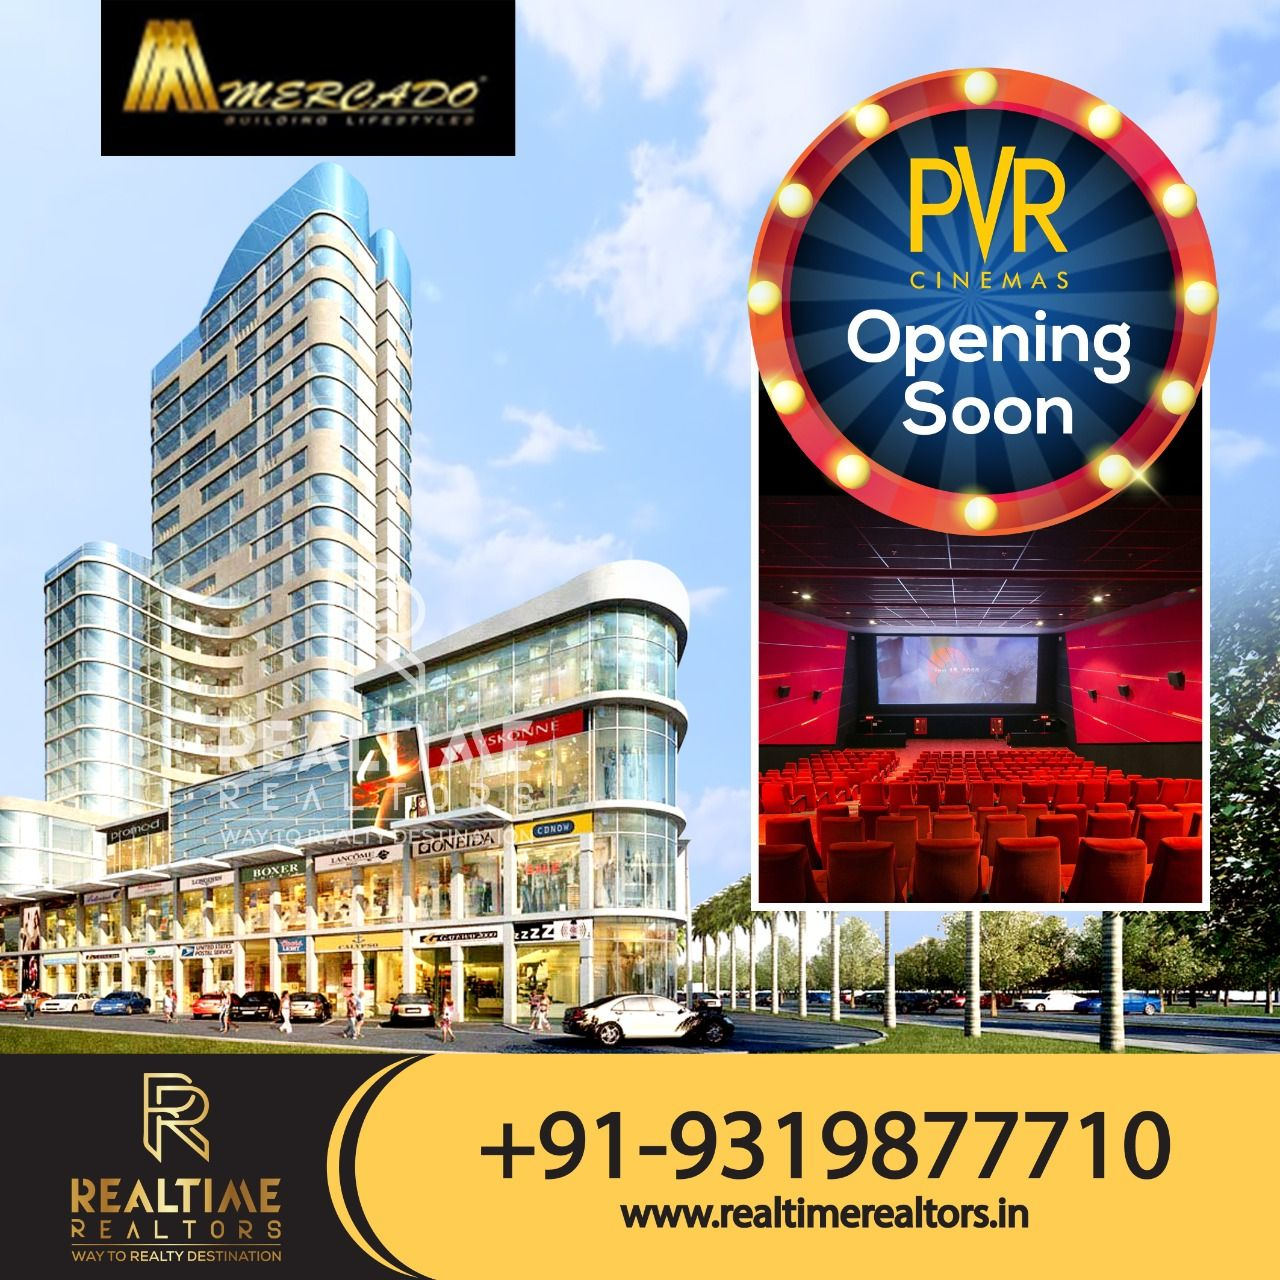 The Ultimate Cinema Experience Pvr Coming Soon To Elan Mercado For More Details 91 9319877710 Real Estate Companies Commercial Property Cinema Experience